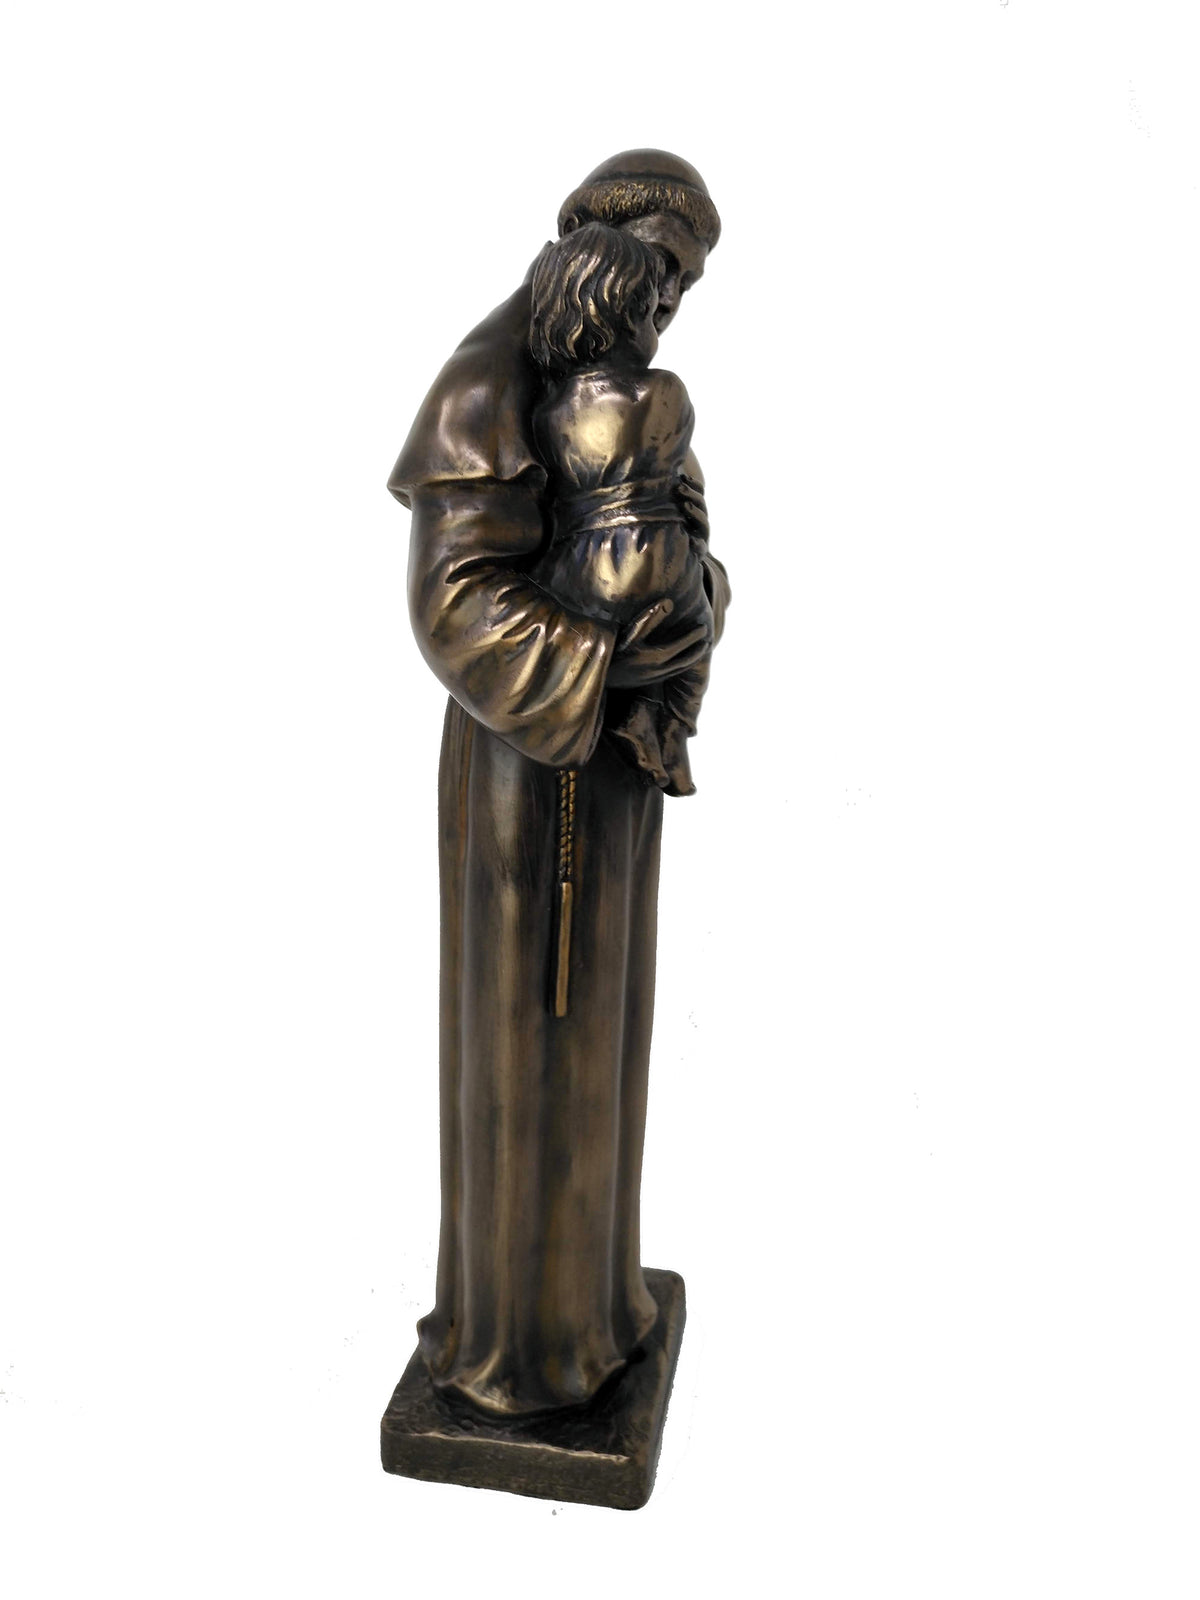 St. Anthony/Anthony of Padua Statue - Patron Saint of Lost Items